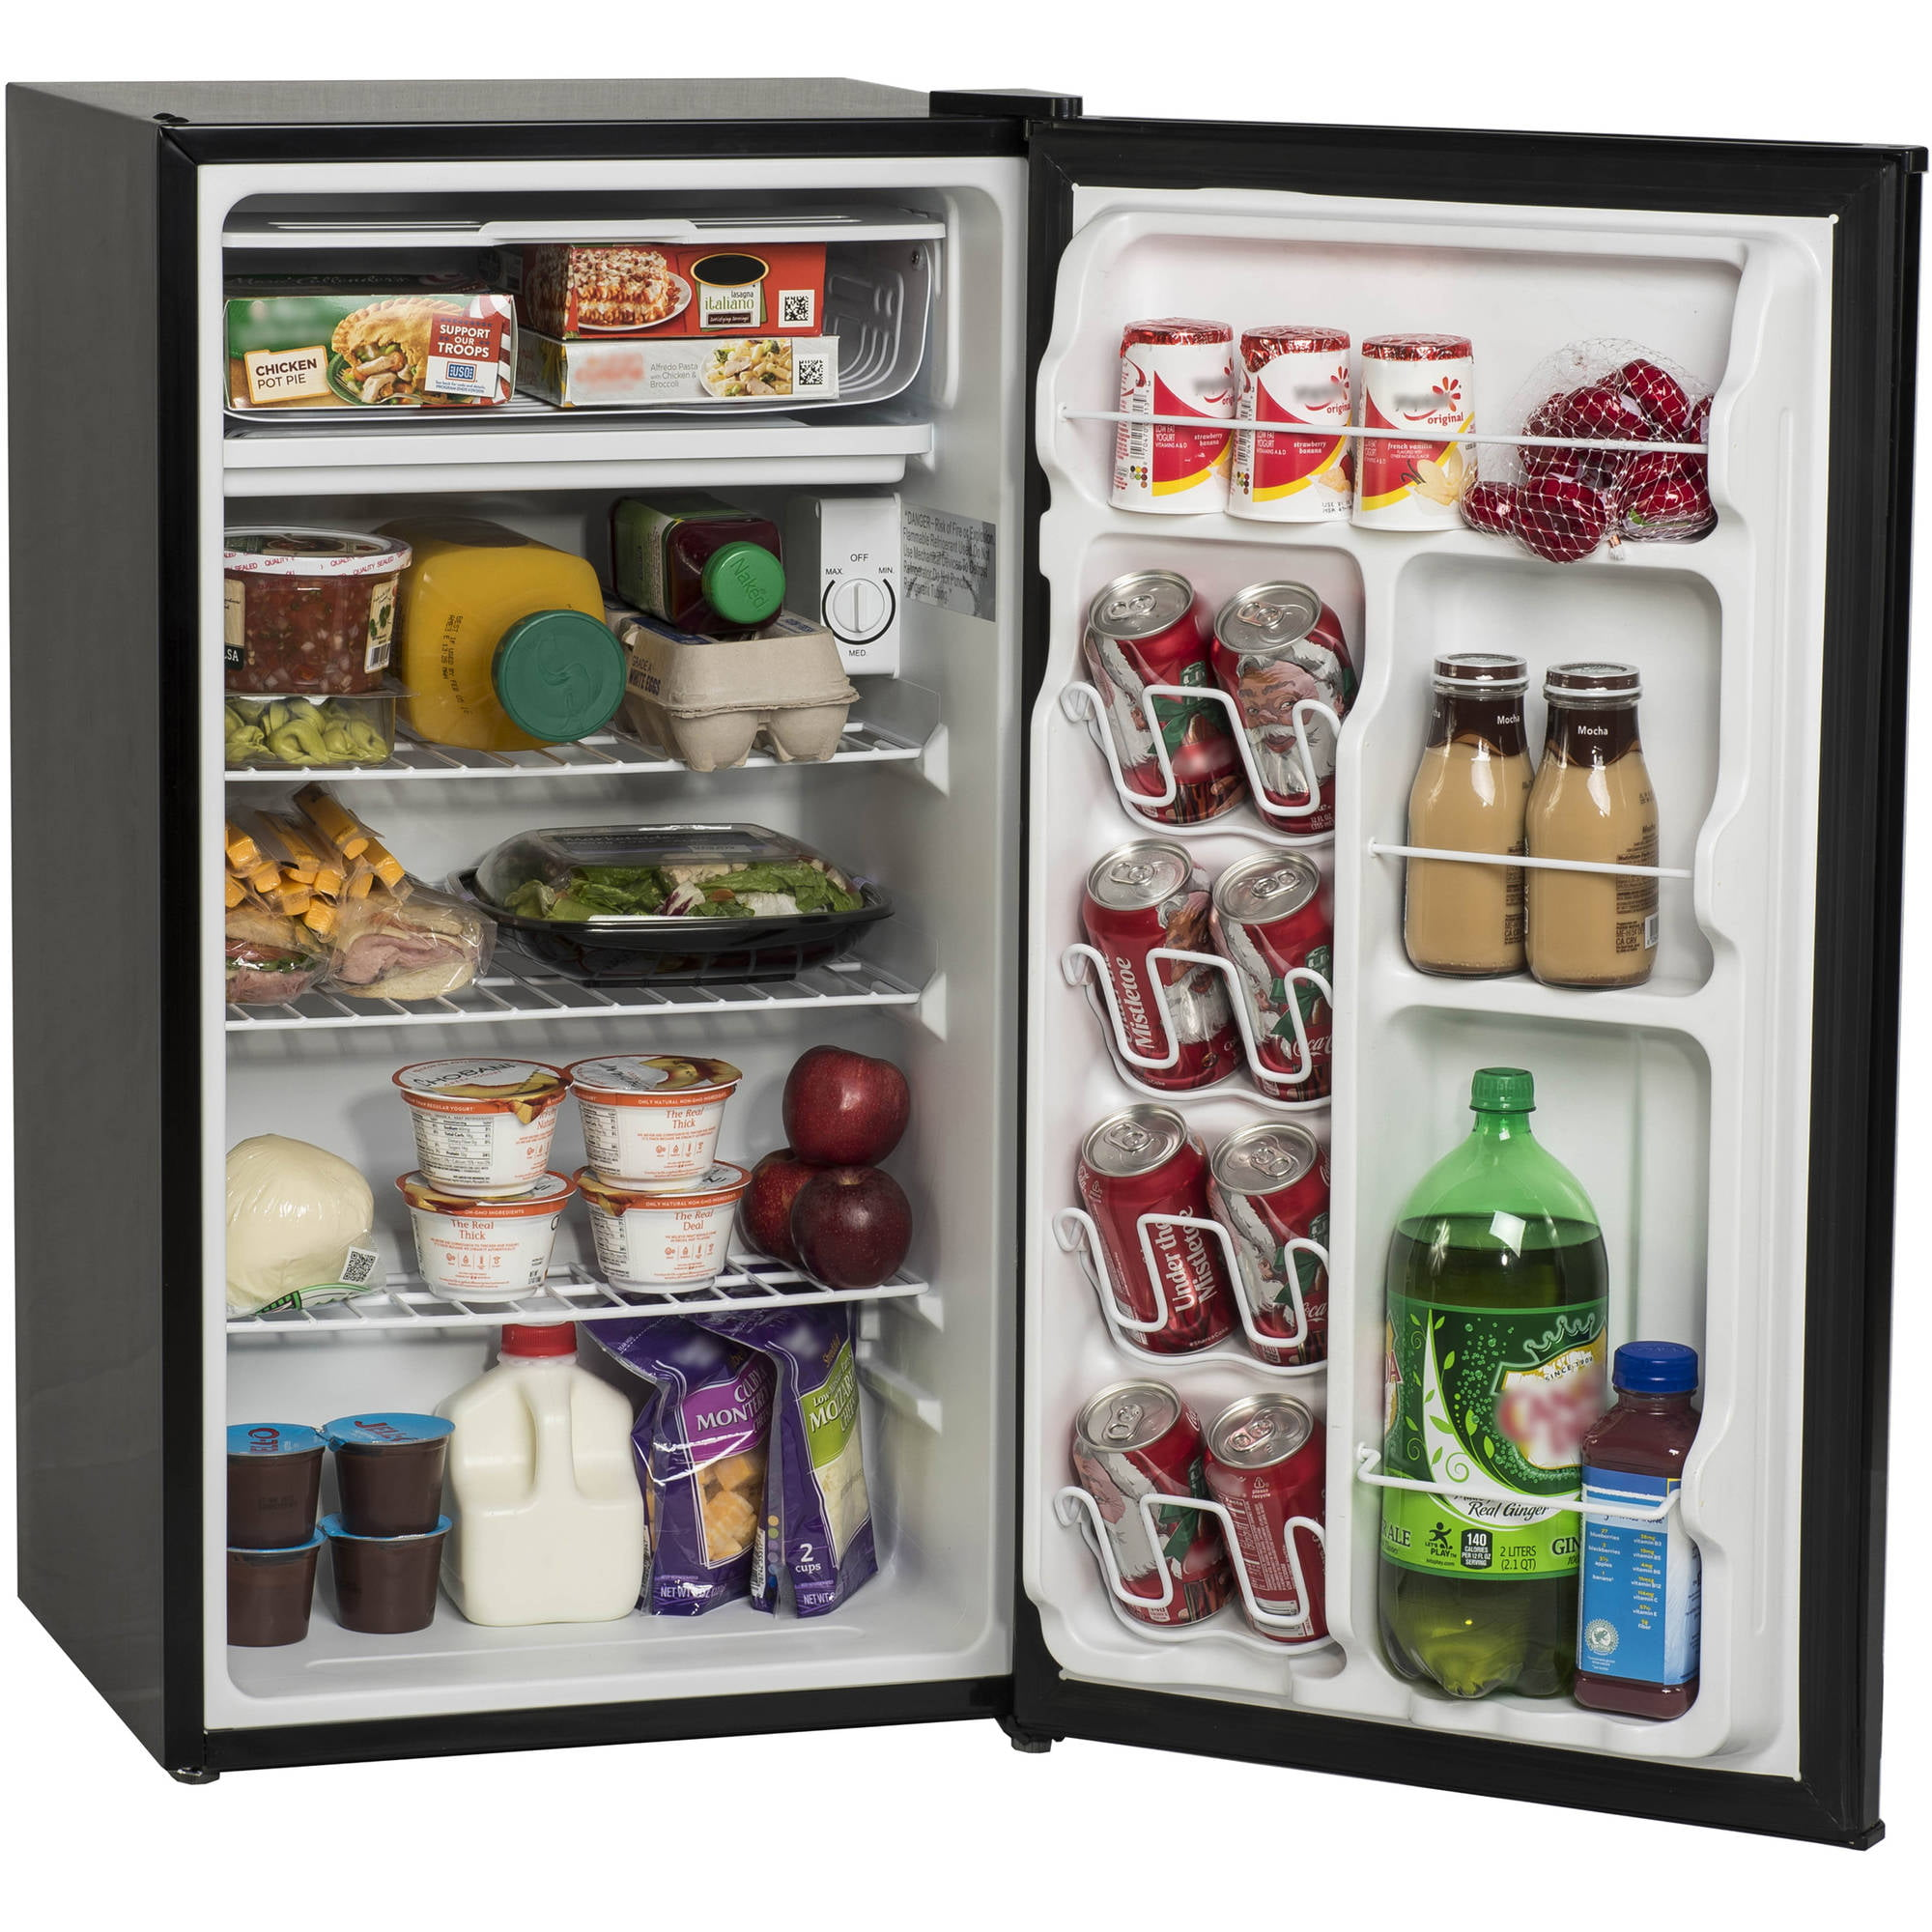 Arctic King 3.3 Cu Ft Single Door Mini Fridge 17.70 x 18.60 x 33.90 Inches, Stainless Steel Look